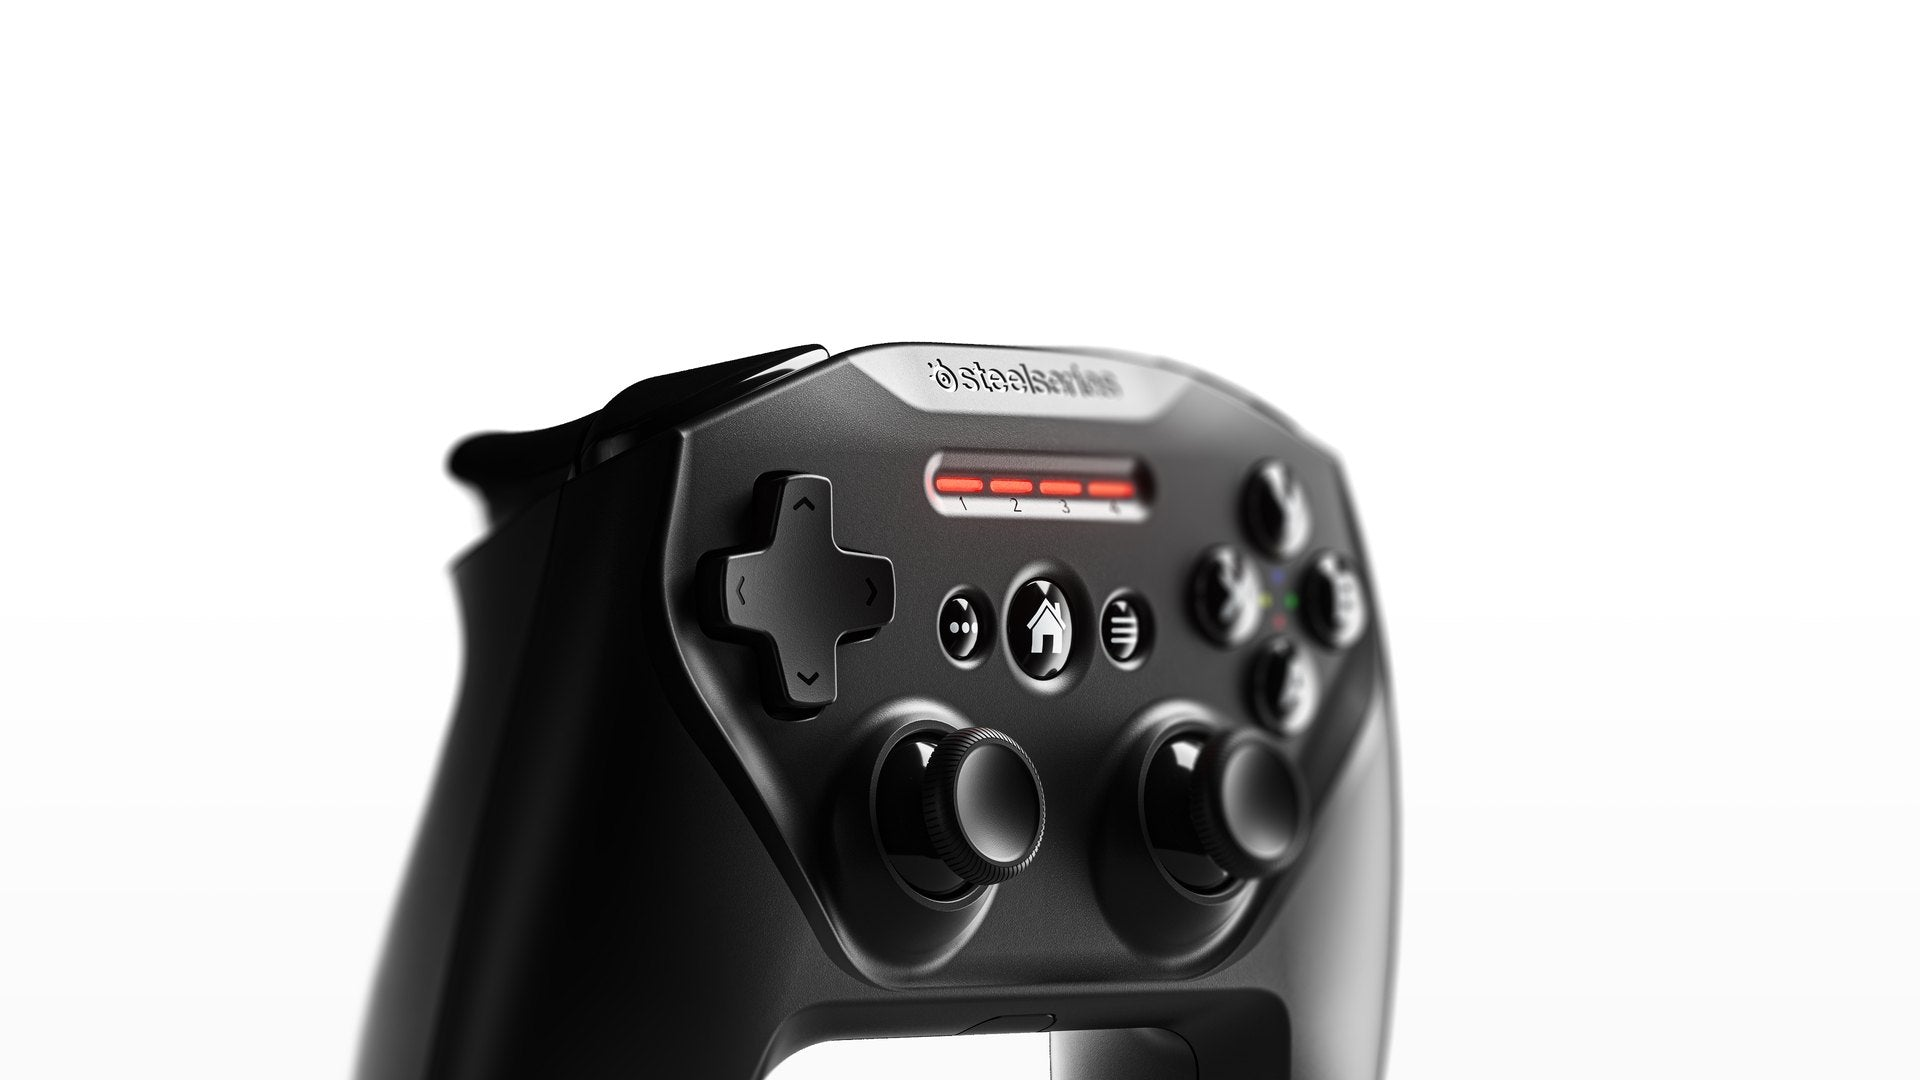 Clickable Joysticks - Clickable L3/R3 joystick buttons allow for more input options, so you can enjoy the full console experience with any Apple product.